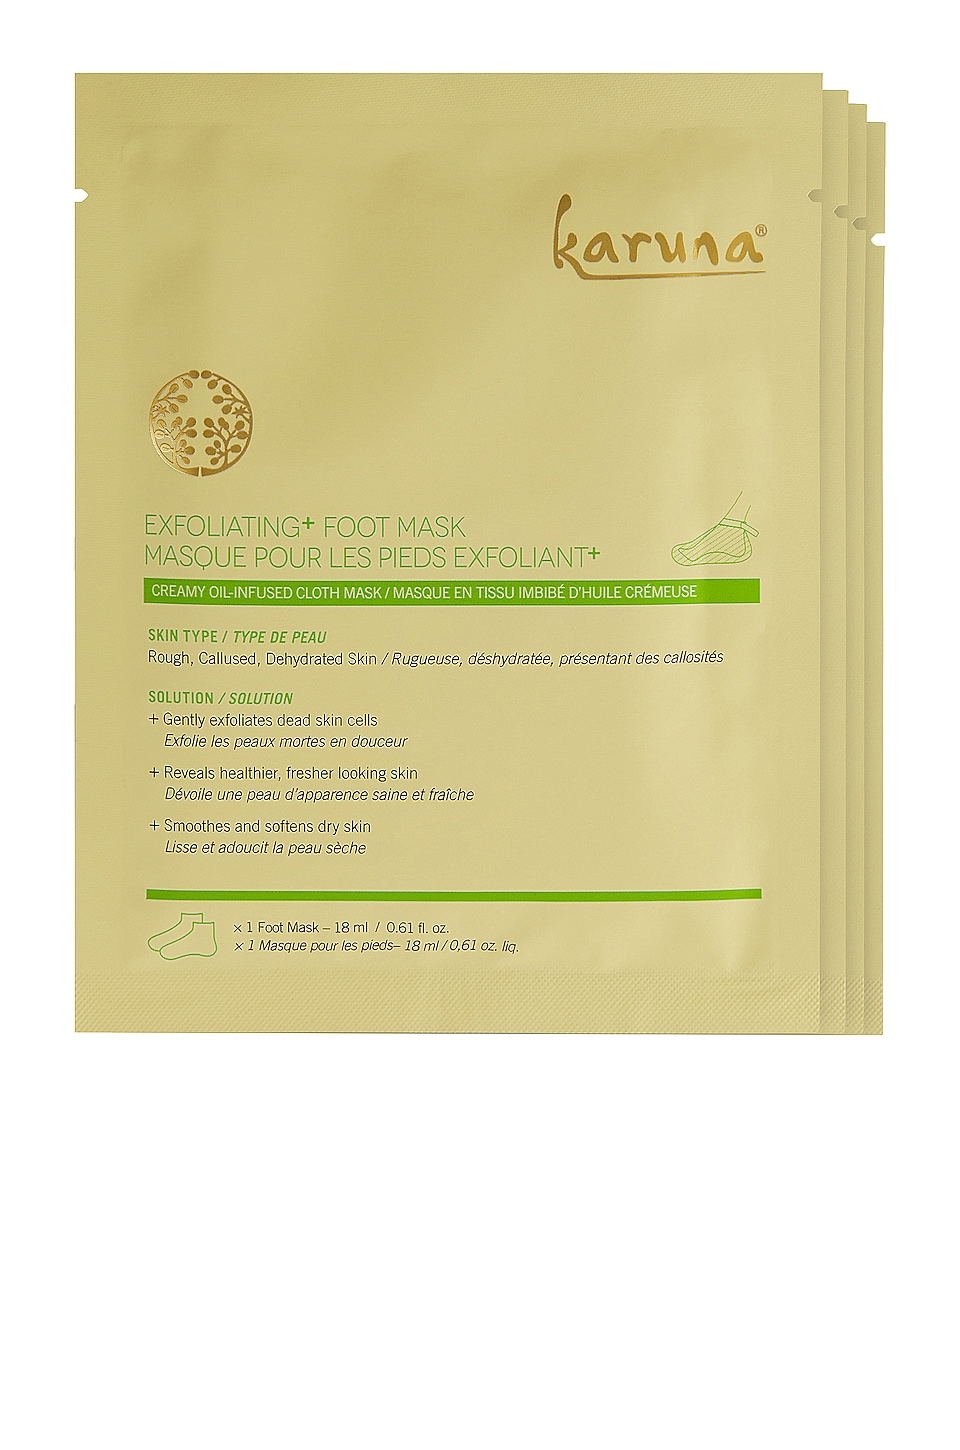 Karuna Exfoliating+ Foot Mask 4 Pack